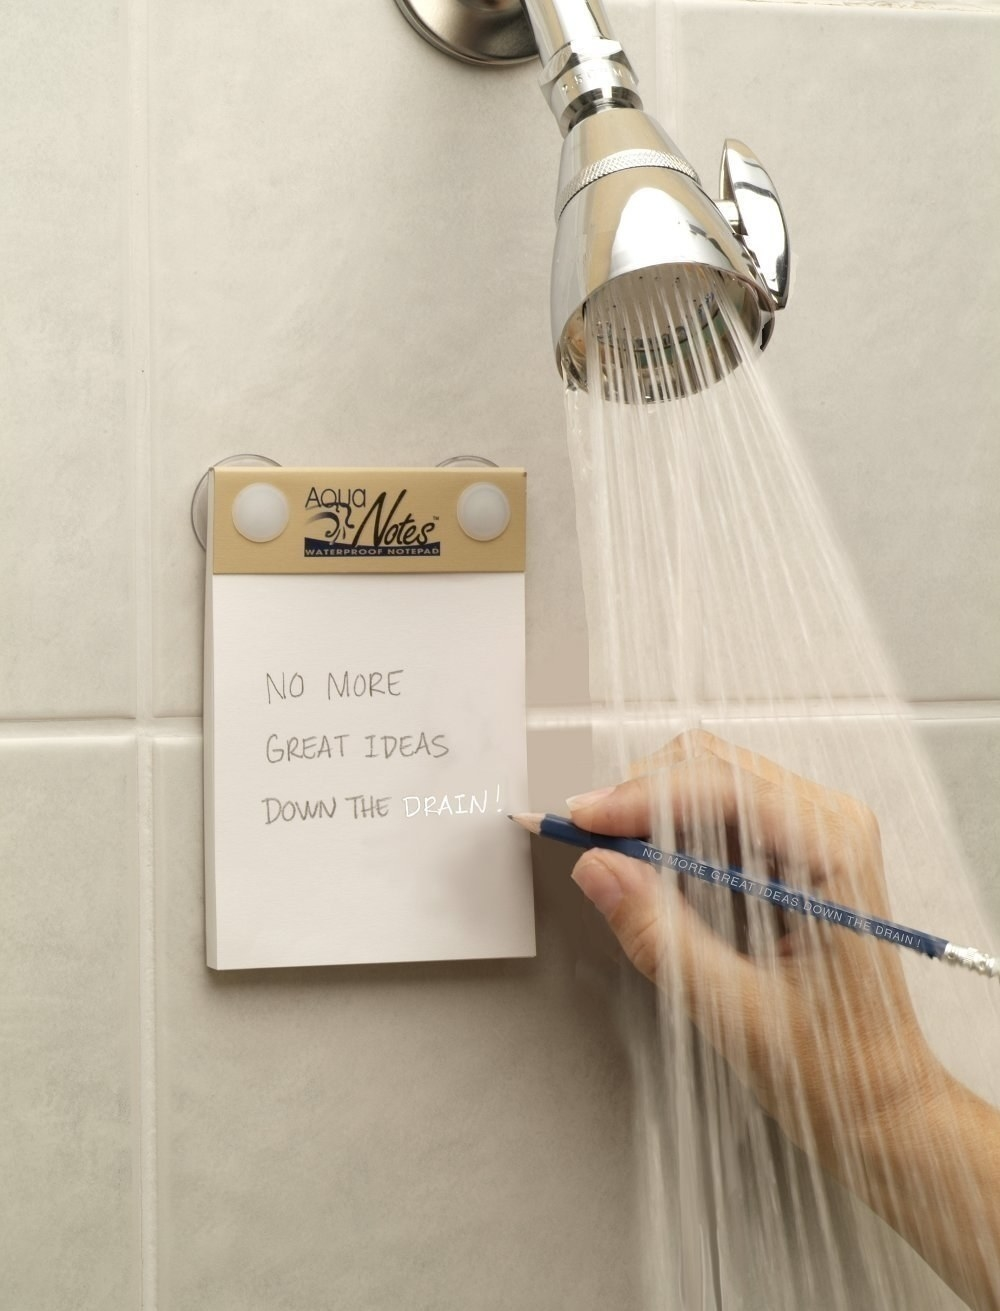 The notepad affixed to a shower wall while a hand writes on it with a pencil